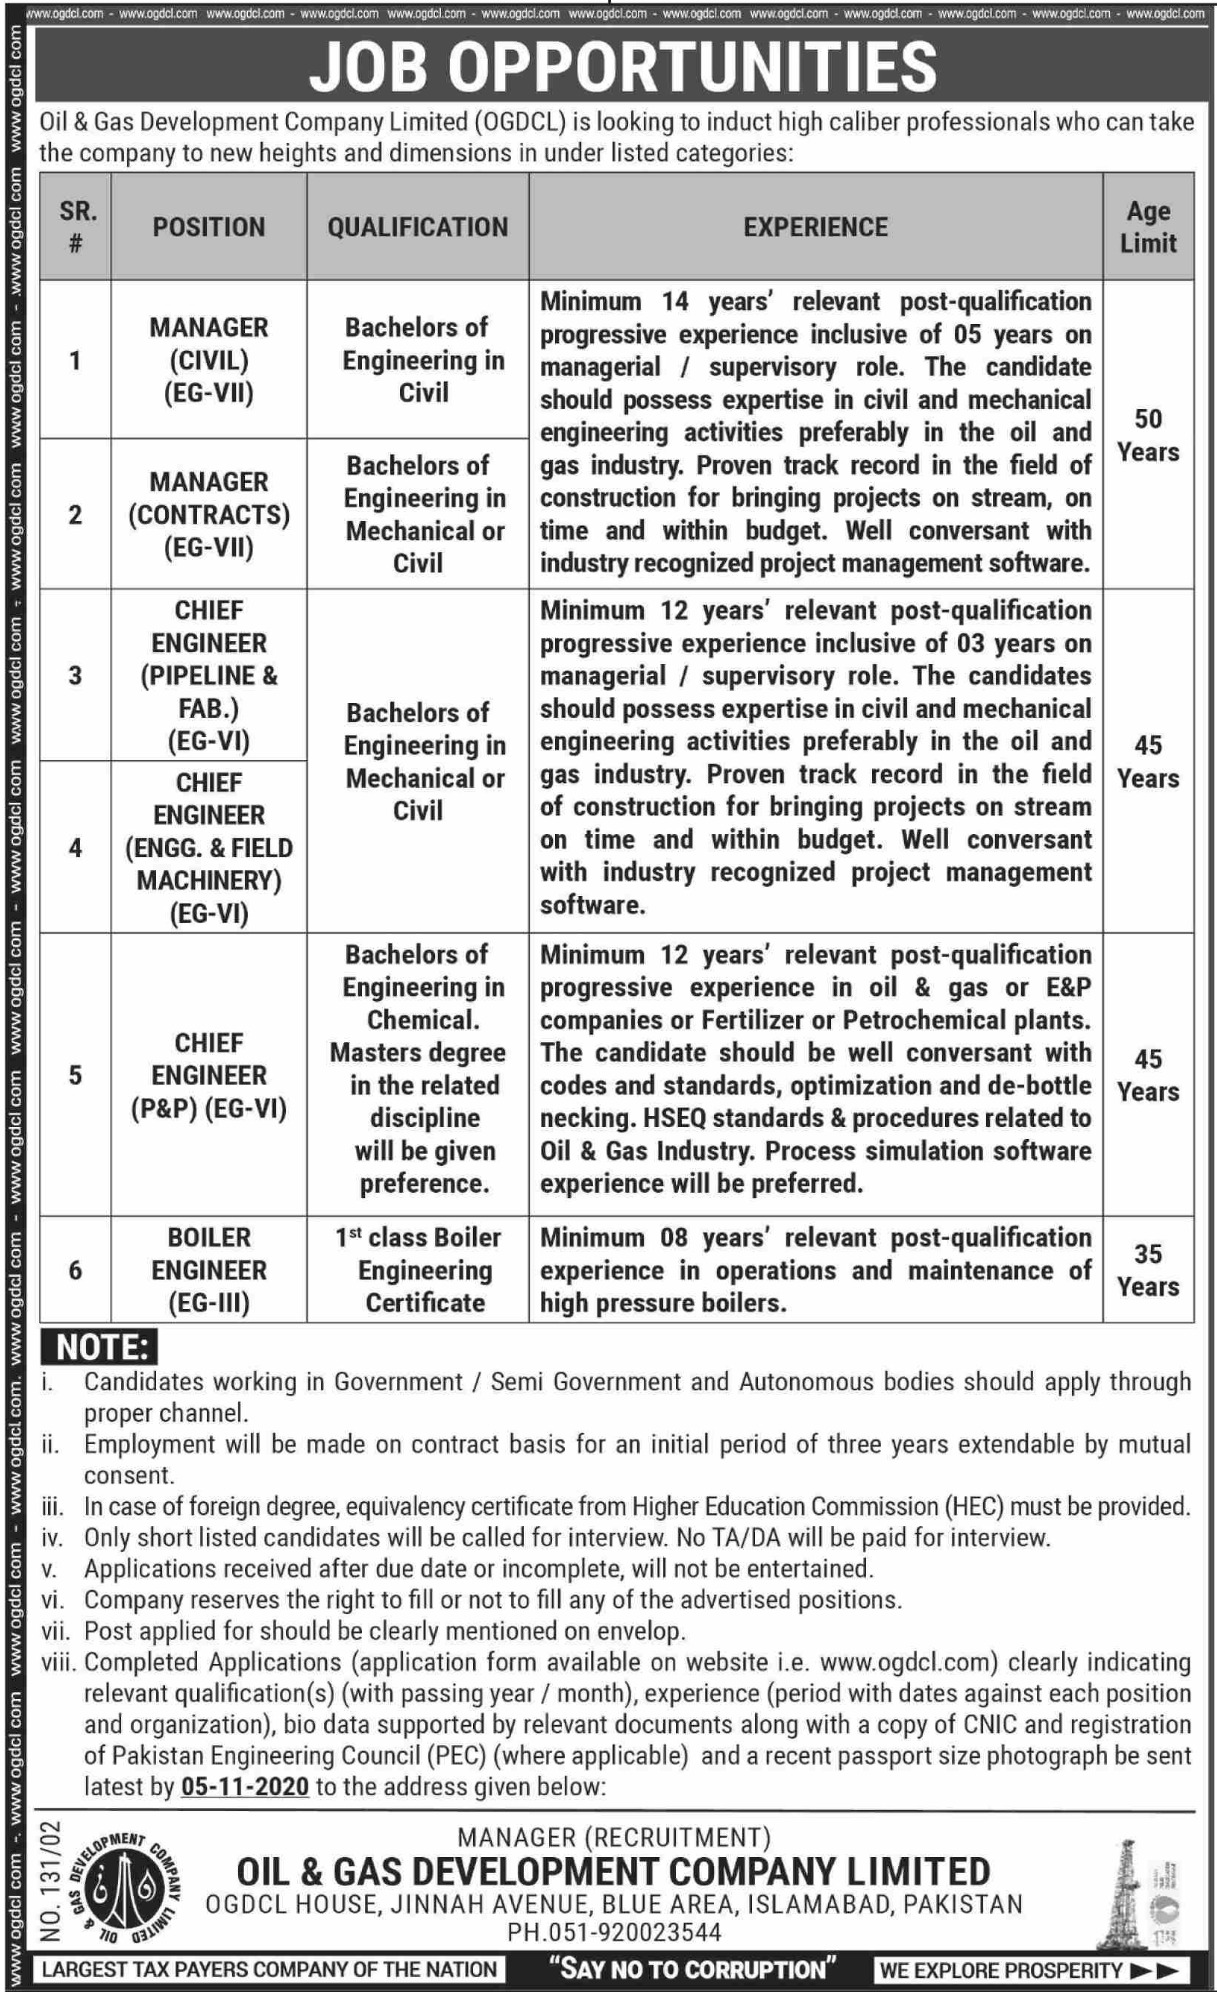 Oil & Gas Development Company Limited OGDCL Jobs October 2020